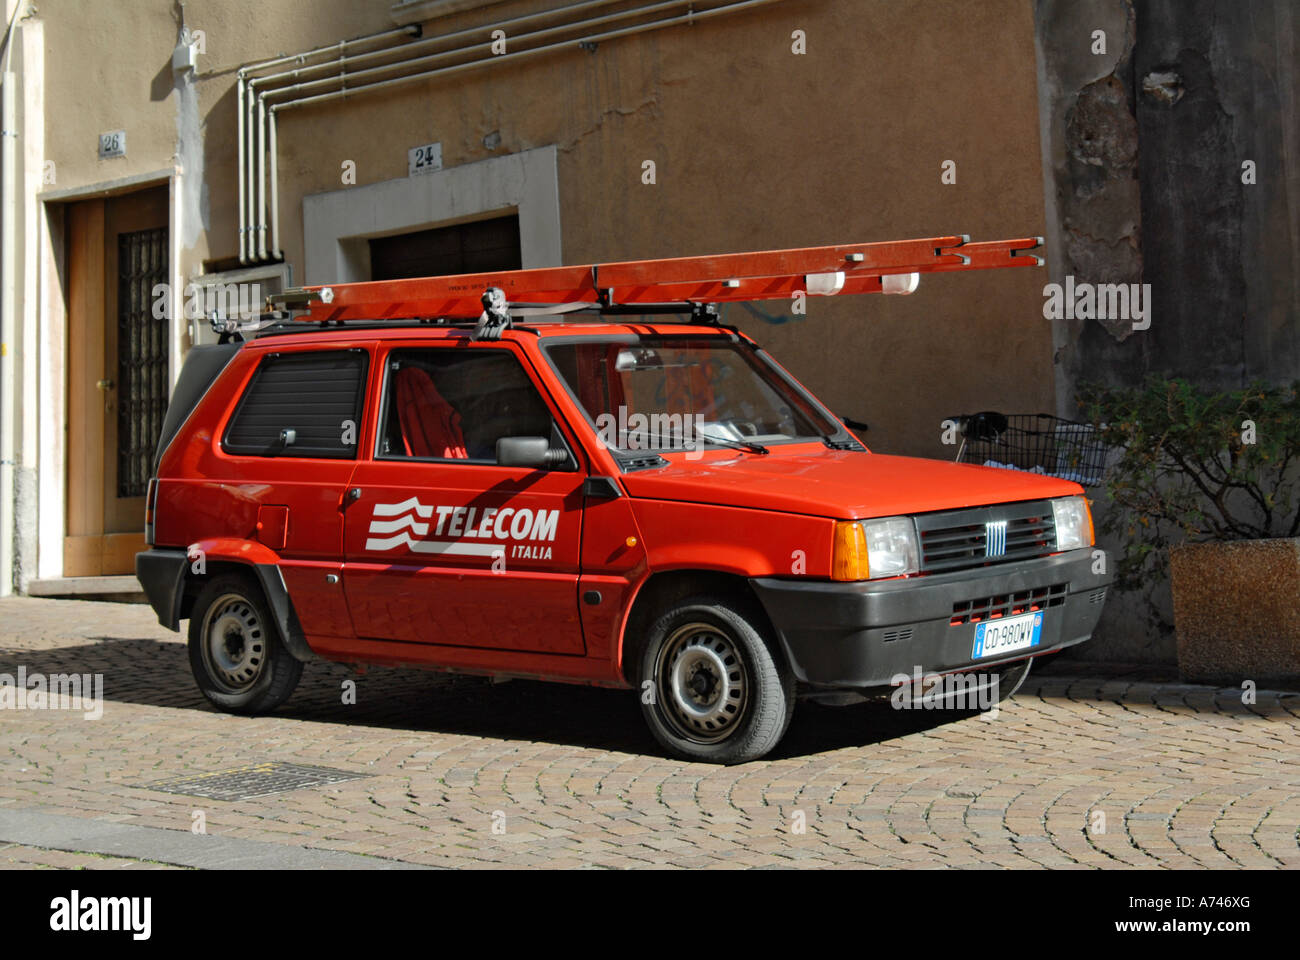 italian telecom fiat panda van ideal for the narrow italian streets stock photo royalty free. Black Bedroom Furniture Sets. Home Design Ideas